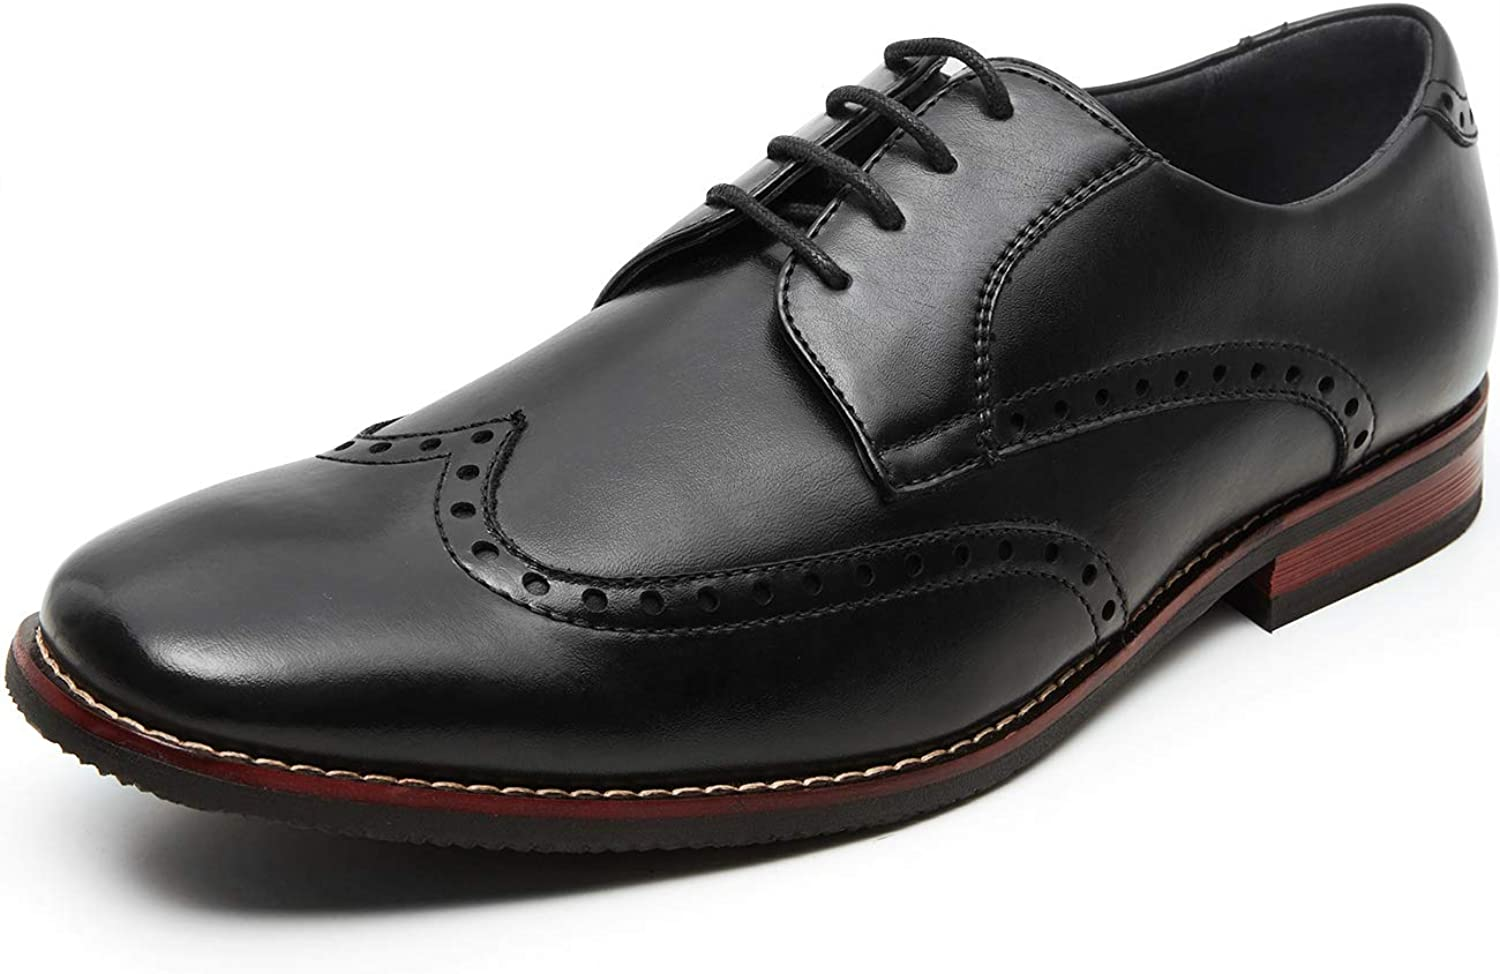 ZRIANG Men's Oxford Dress shoes Lace-up Wing Tip Formal Classic Modern Business Brogue Leather shoes for Men